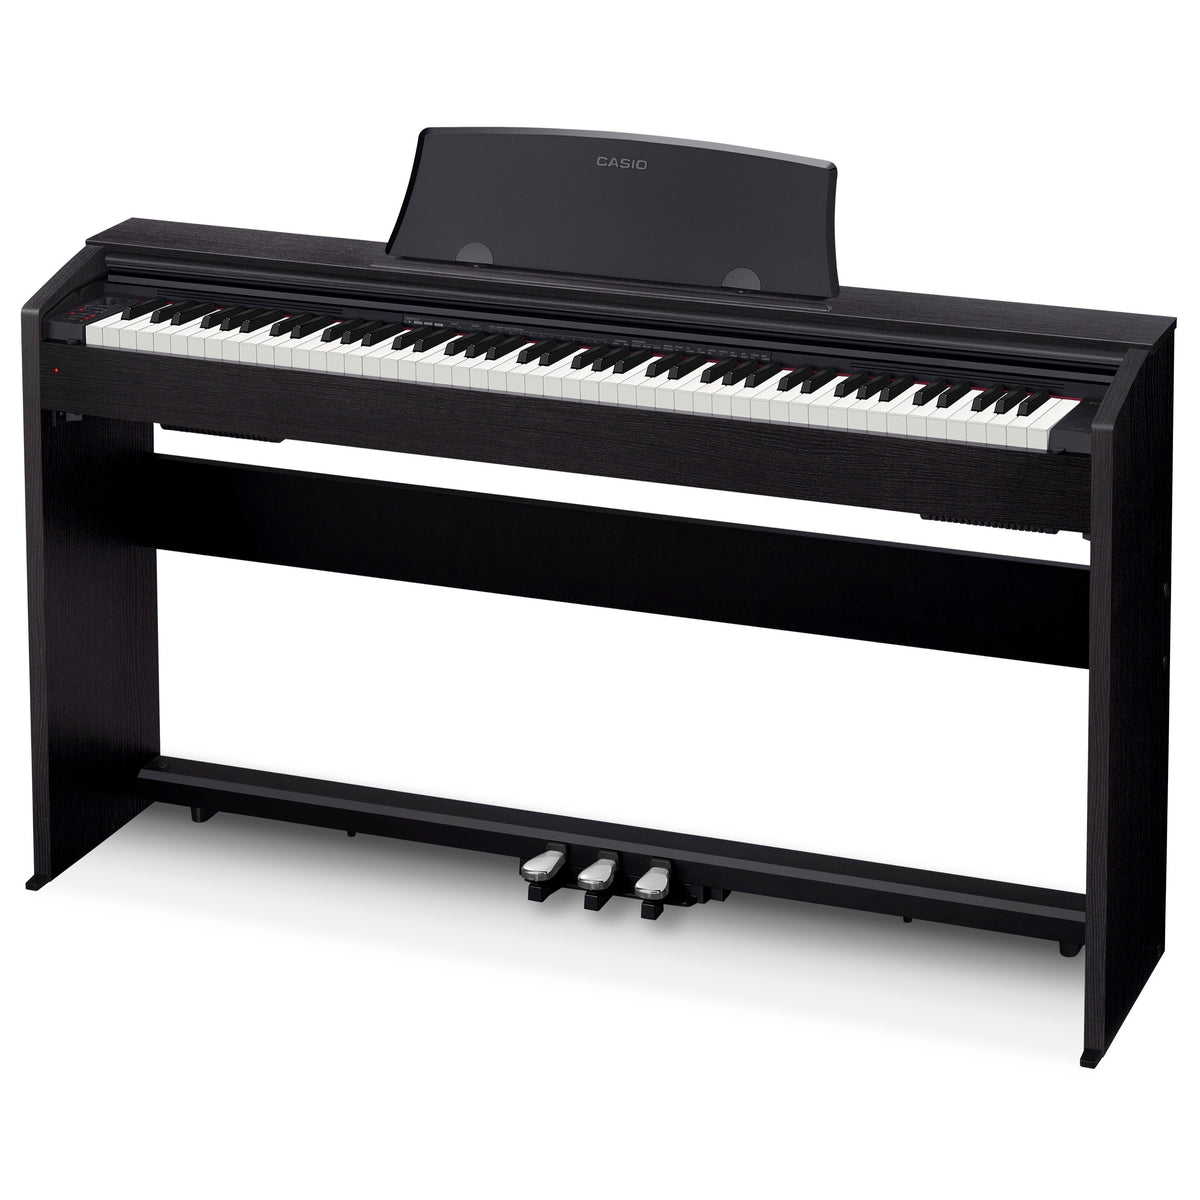 Casio PX-770 Privia Digital Piano, Black